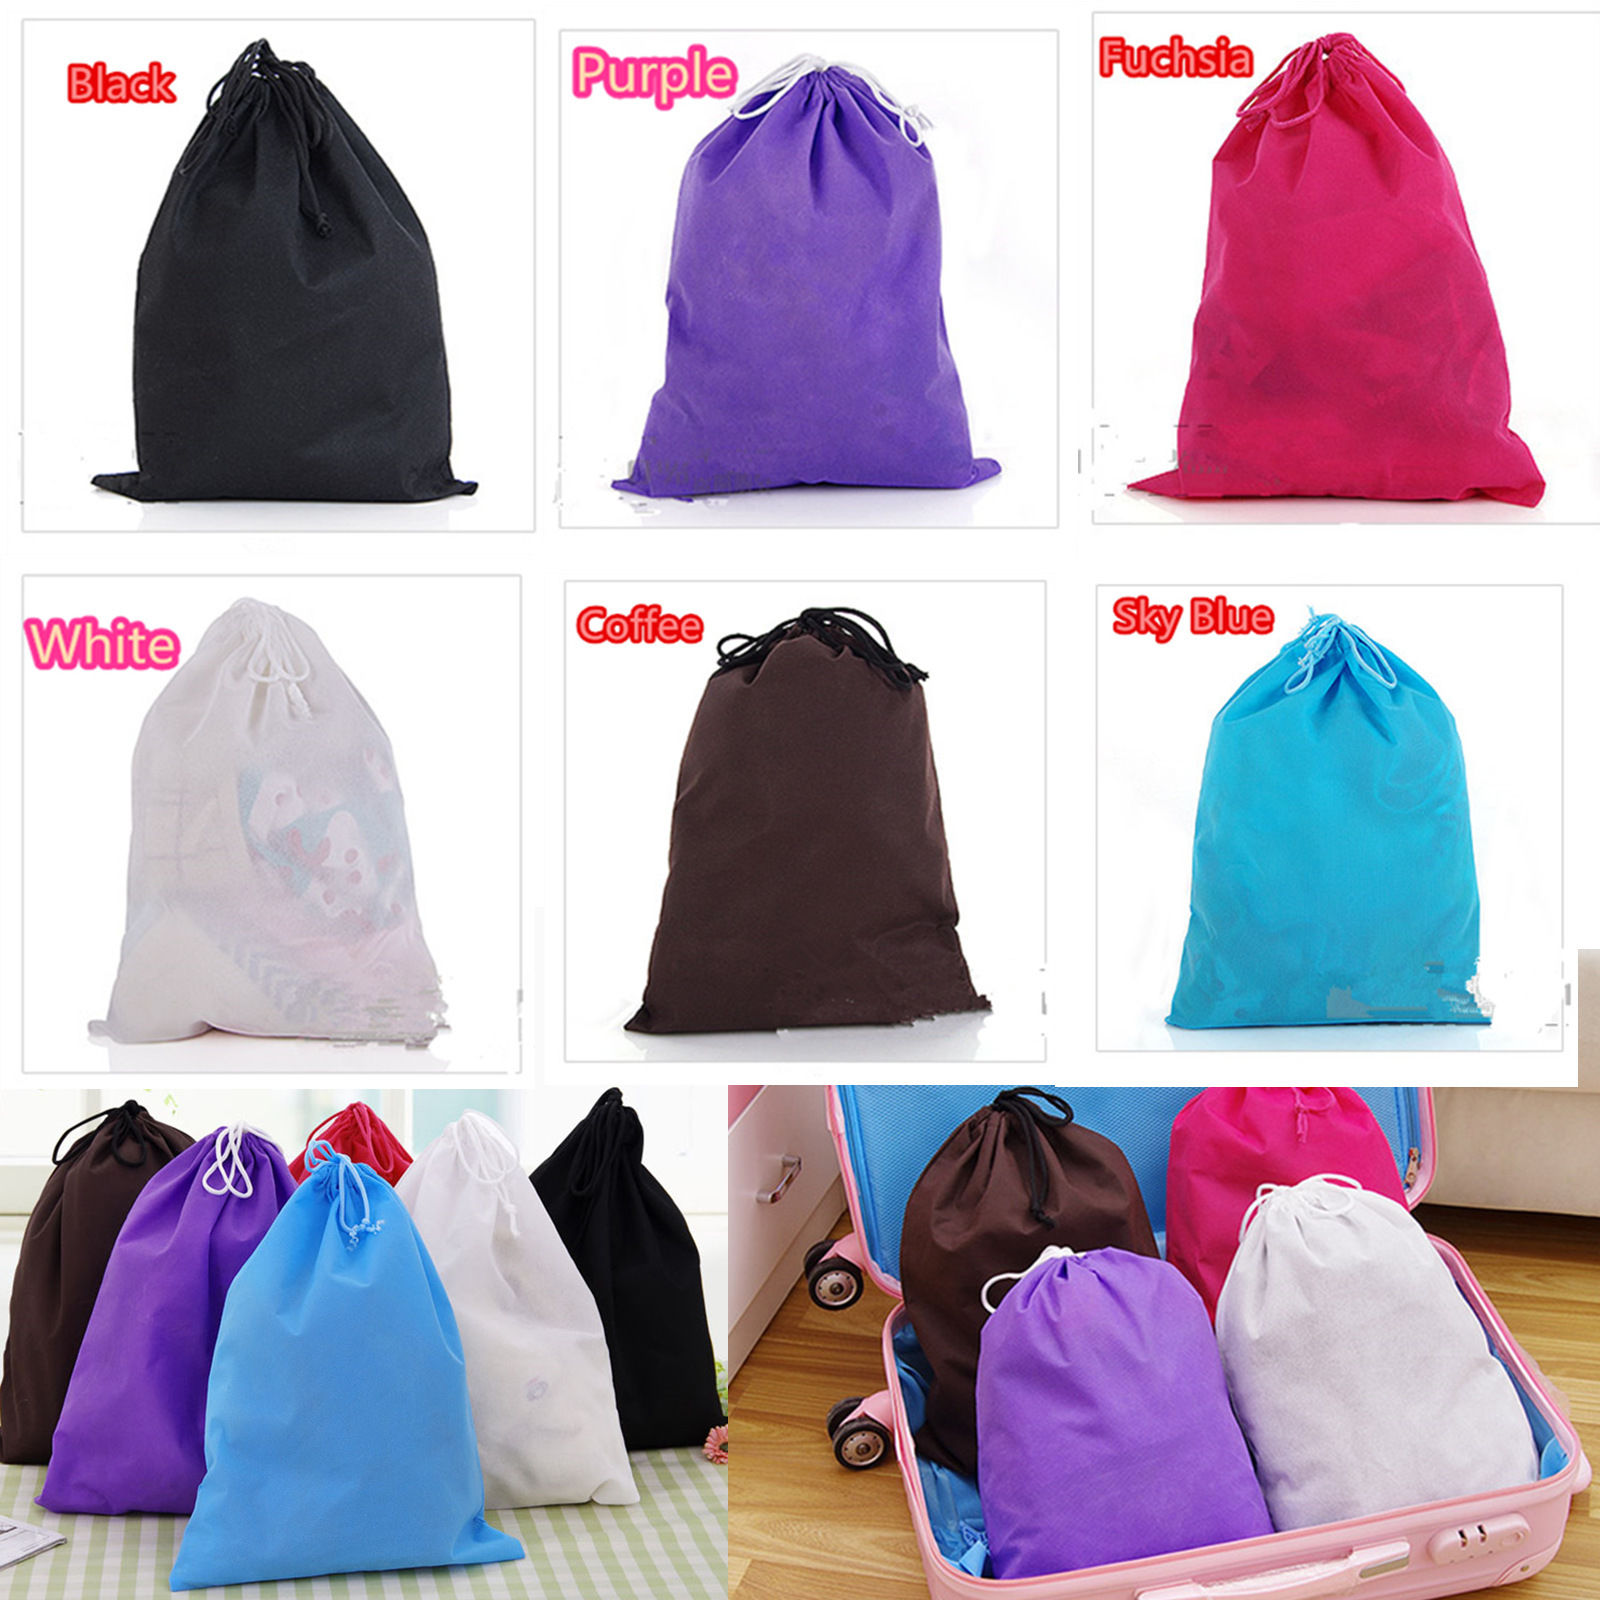 2016 Thick Non-Woven Laundry Shoe Bag Travel Pouch Storage Portable Tote Drawstring Storage Bag Organizer Covers(China (Mainland))